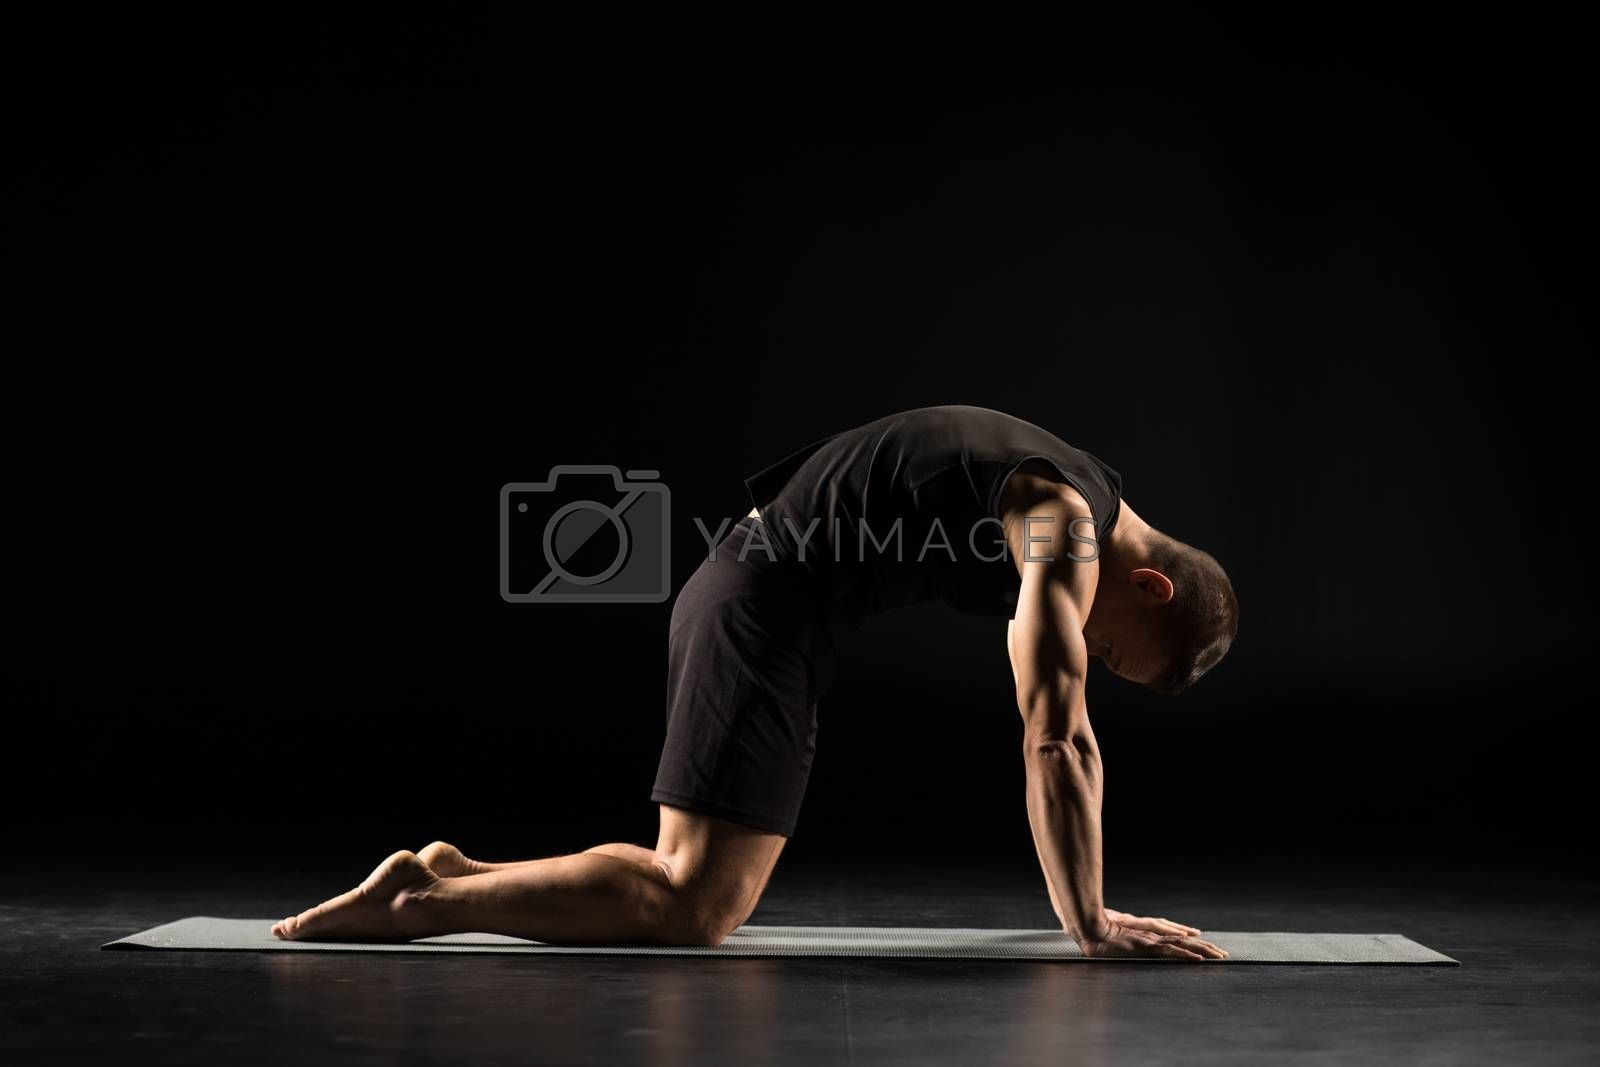 Man practicing yoga performing cat position on yoga mat